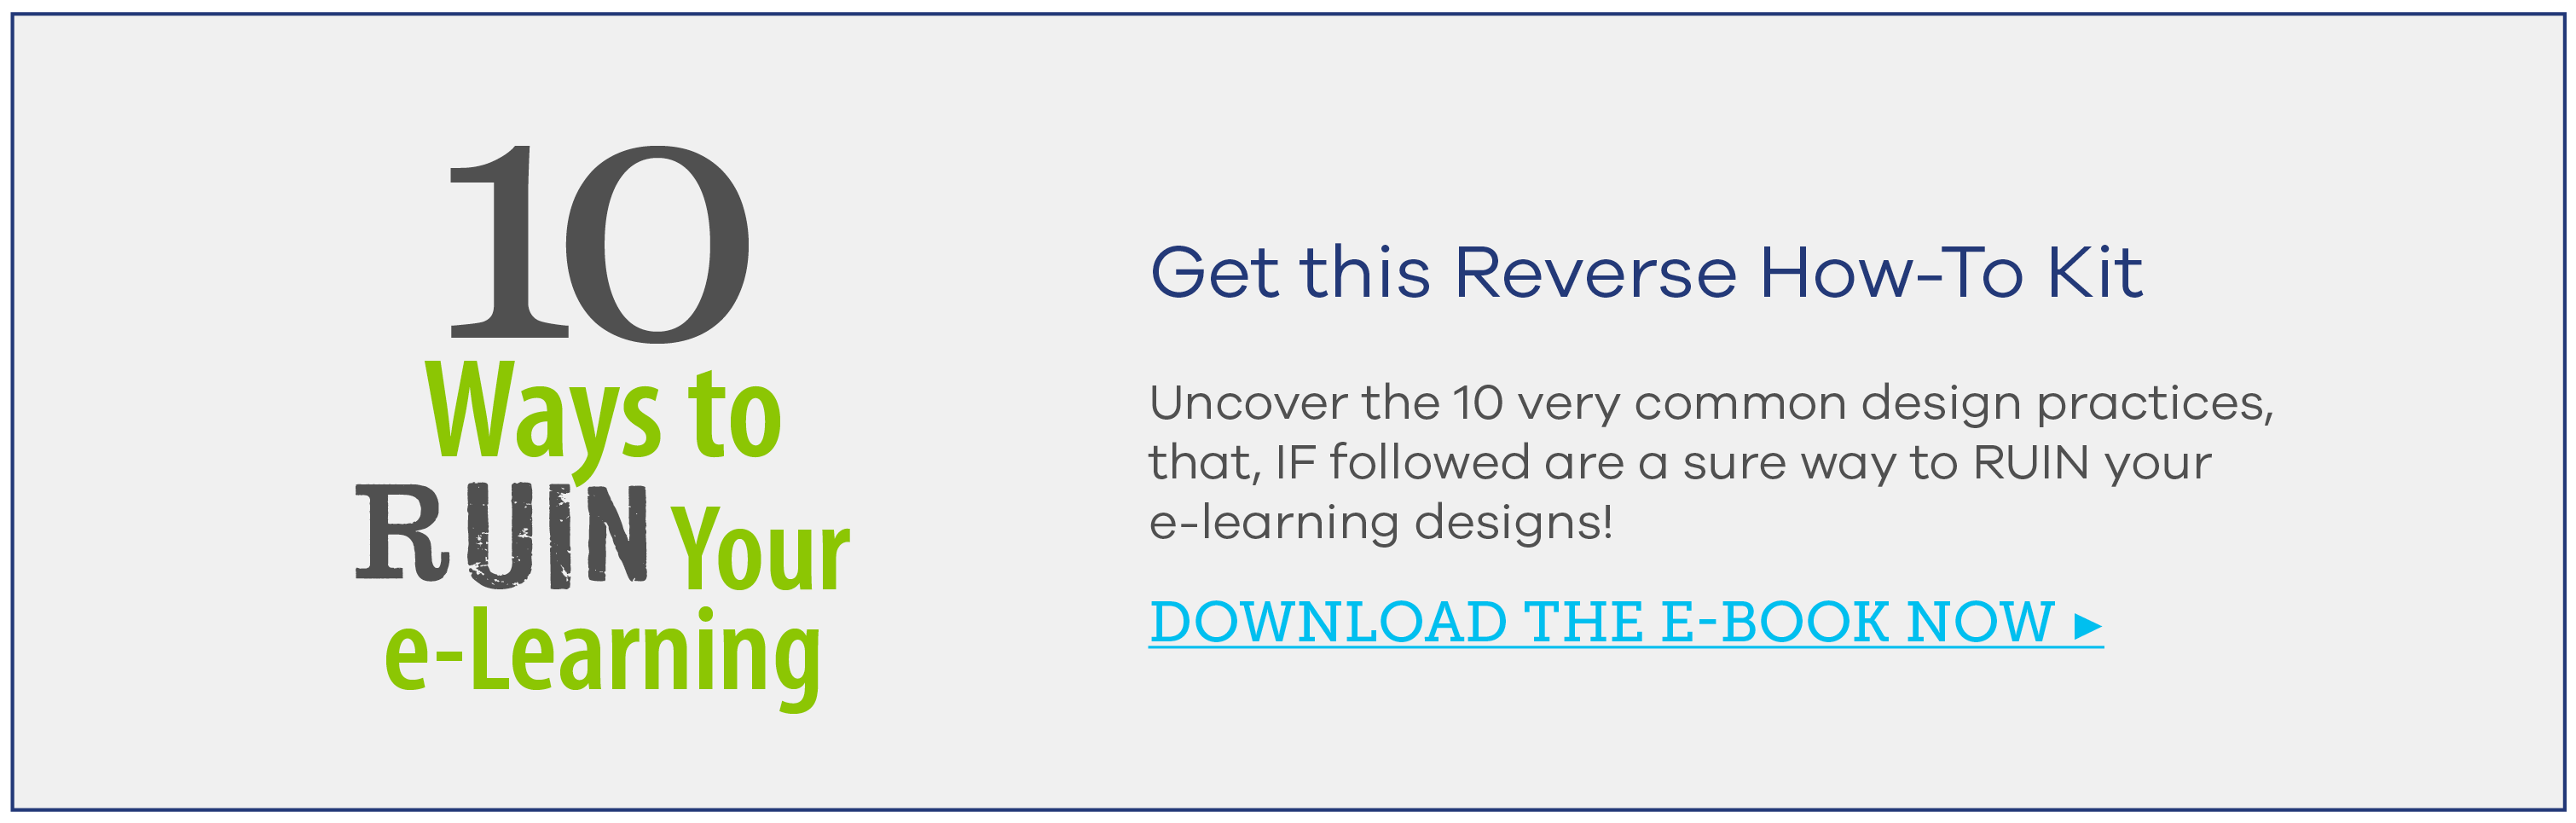 10 Ways to Ruin Your e-Learning Kit - Allen Interactions - Custom e-Learning